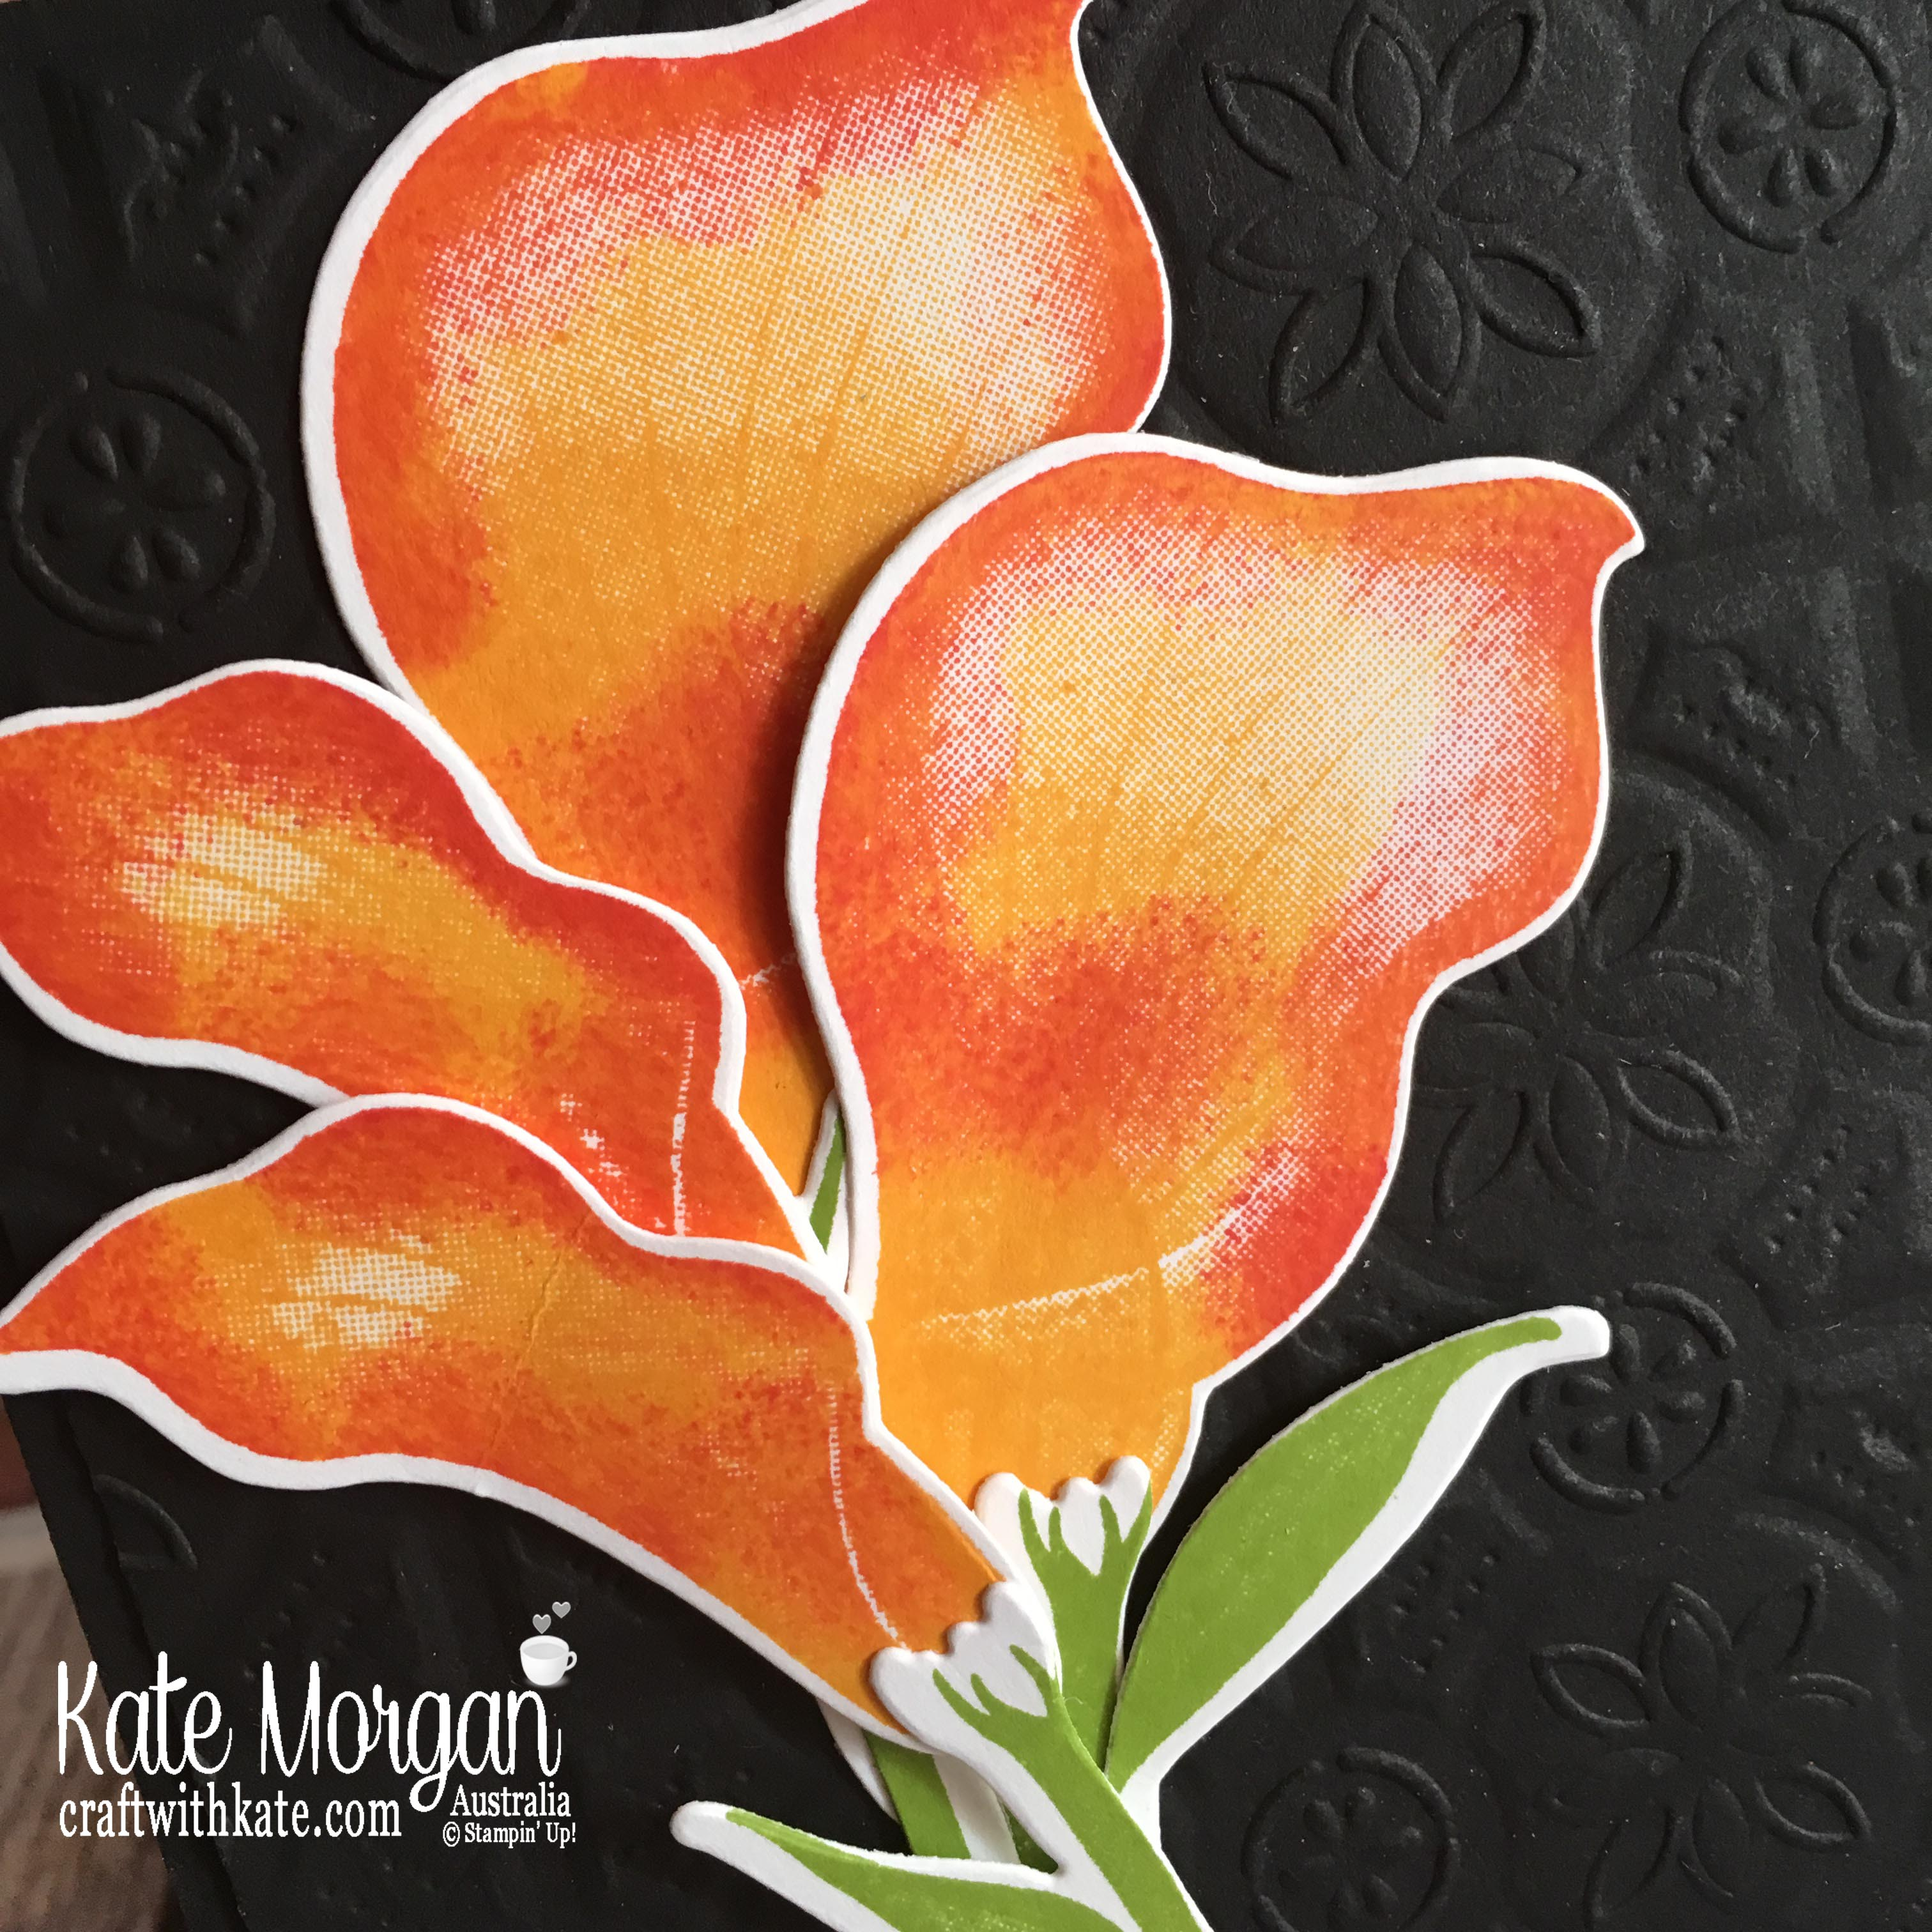 Lasting Lily Stampin Up Saleabration 2019 Colour Creations Blog Hop by Kate Morgan, Australia.